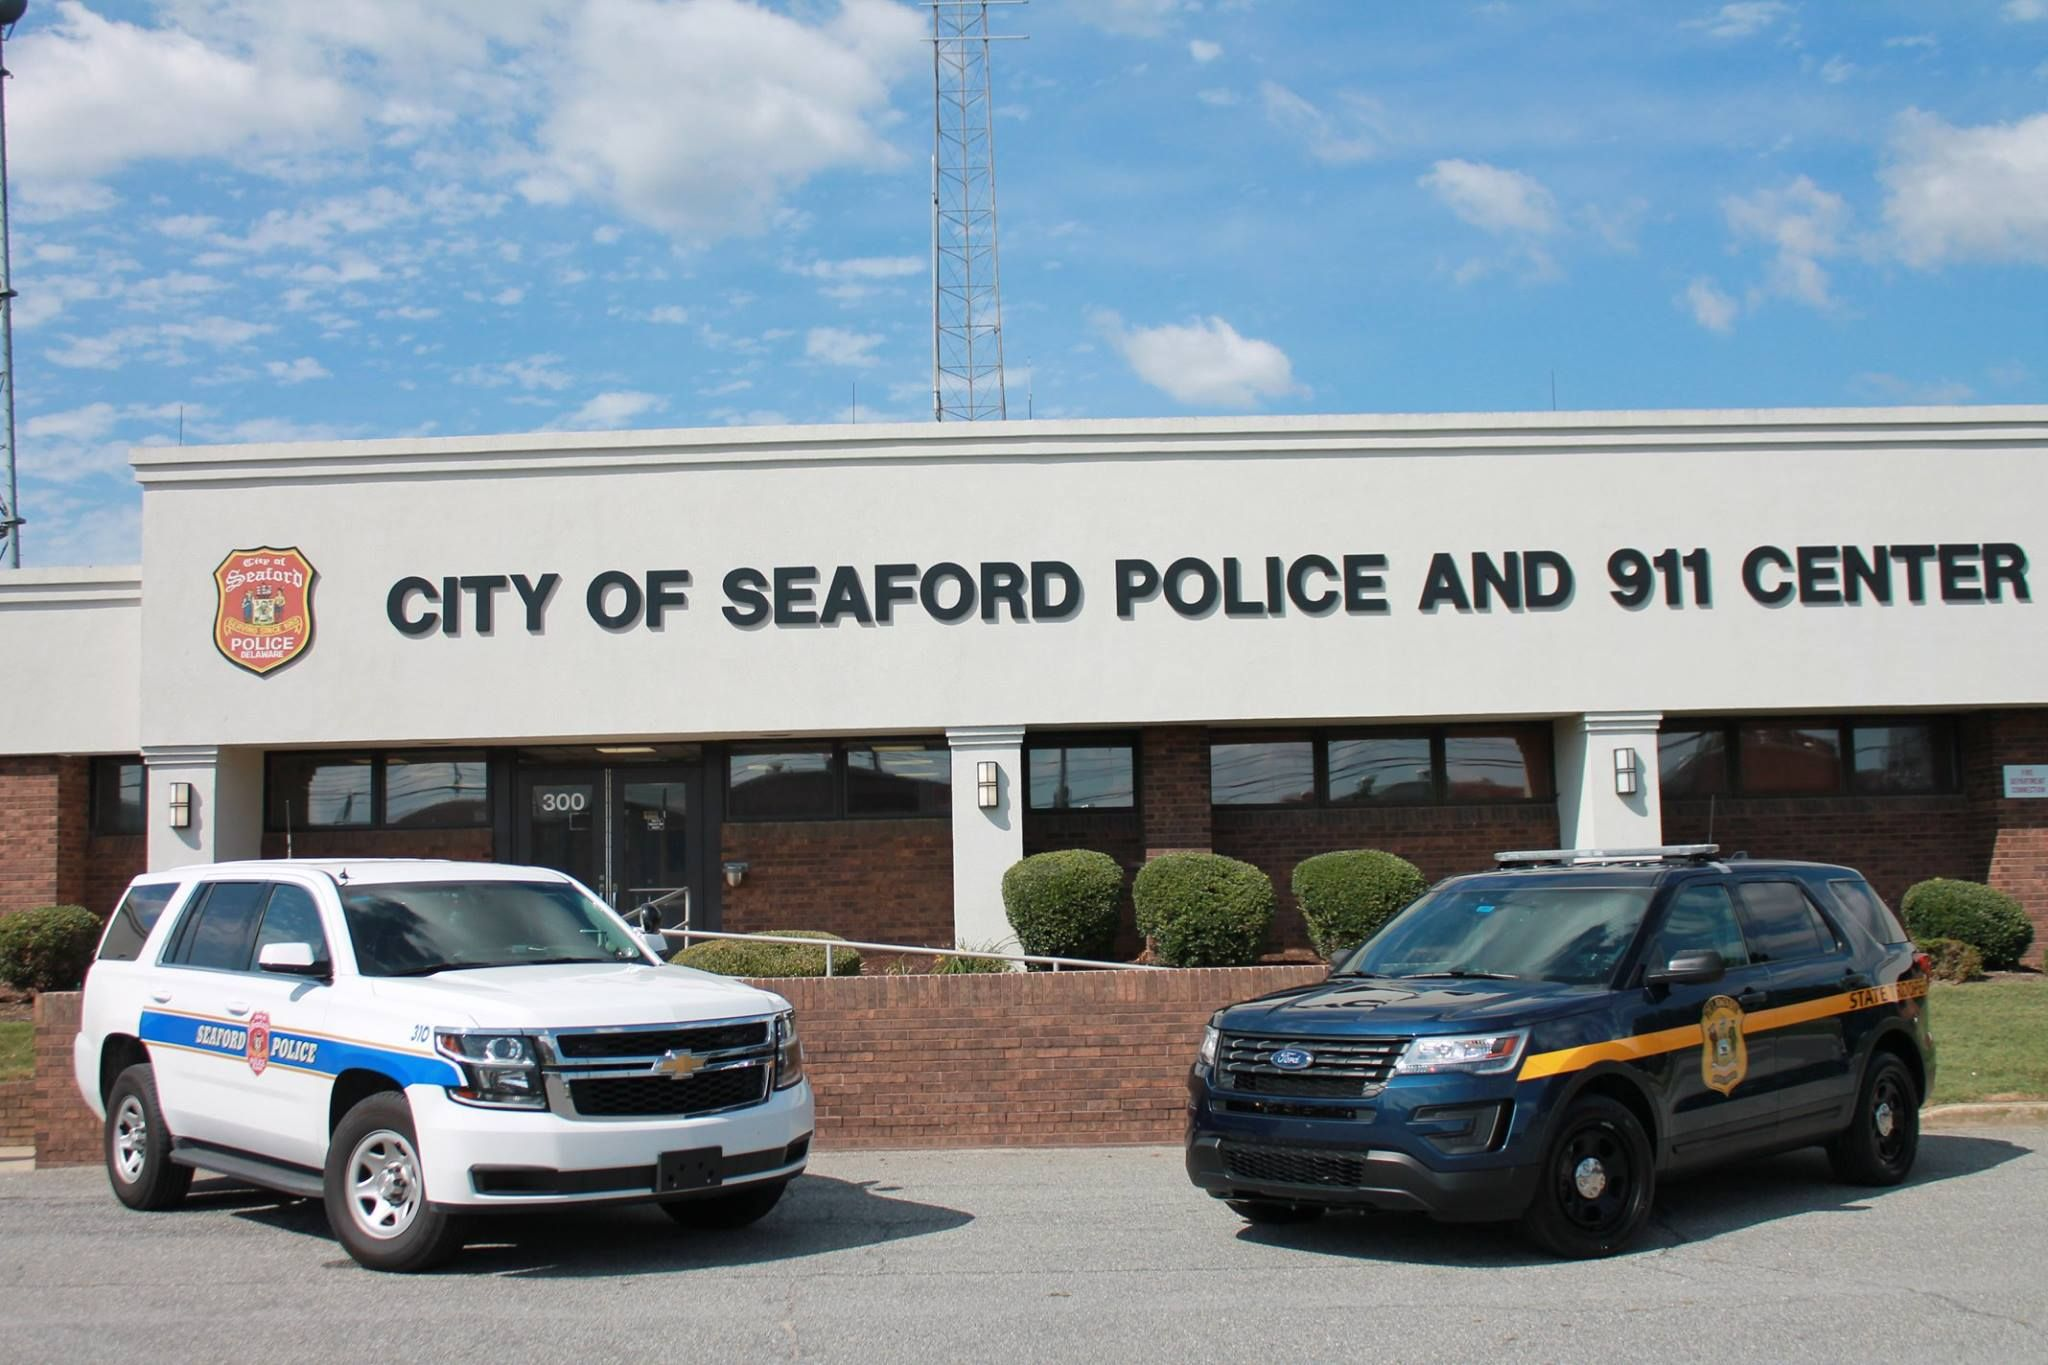 Delaware city of seaford police and delaware state police